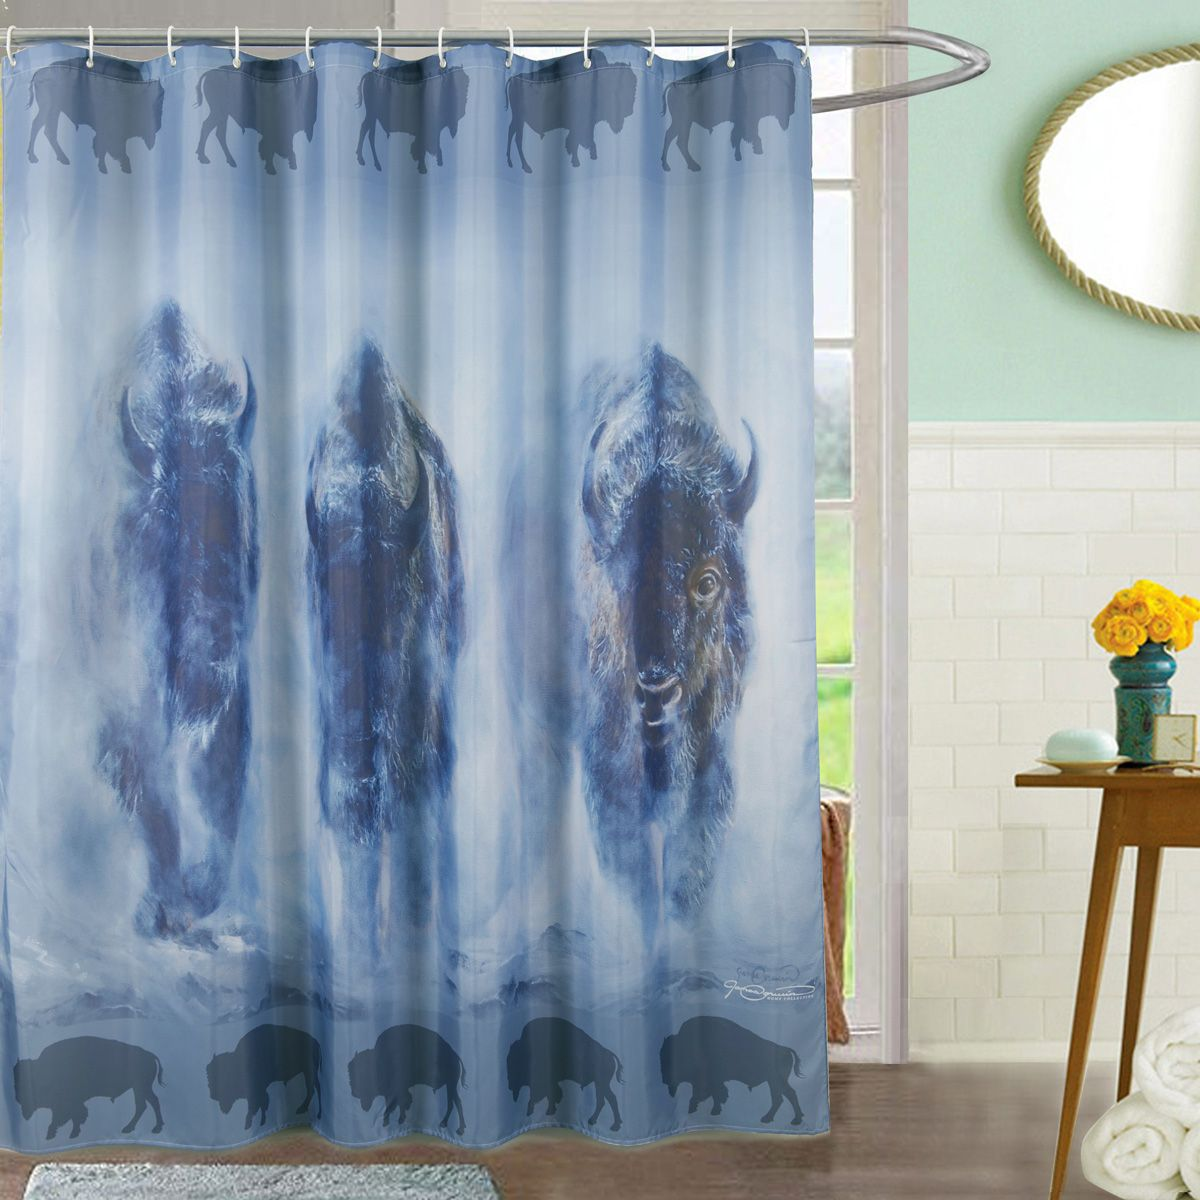 Bison in the Mist Shower Curtain